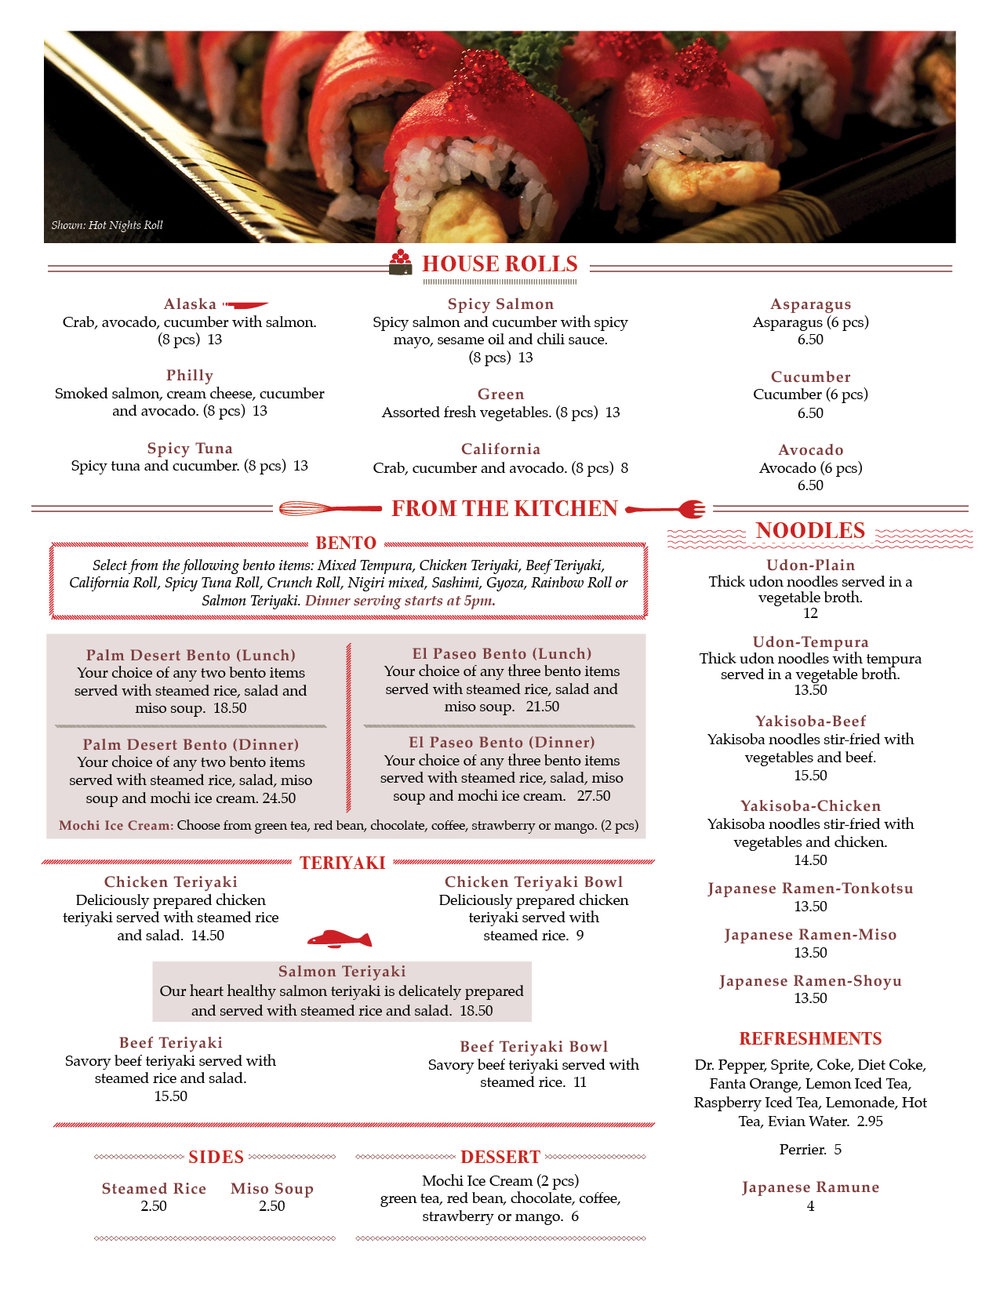 Domo Menu PG 4 SUMMER 2018 PRINT FILES.jpg